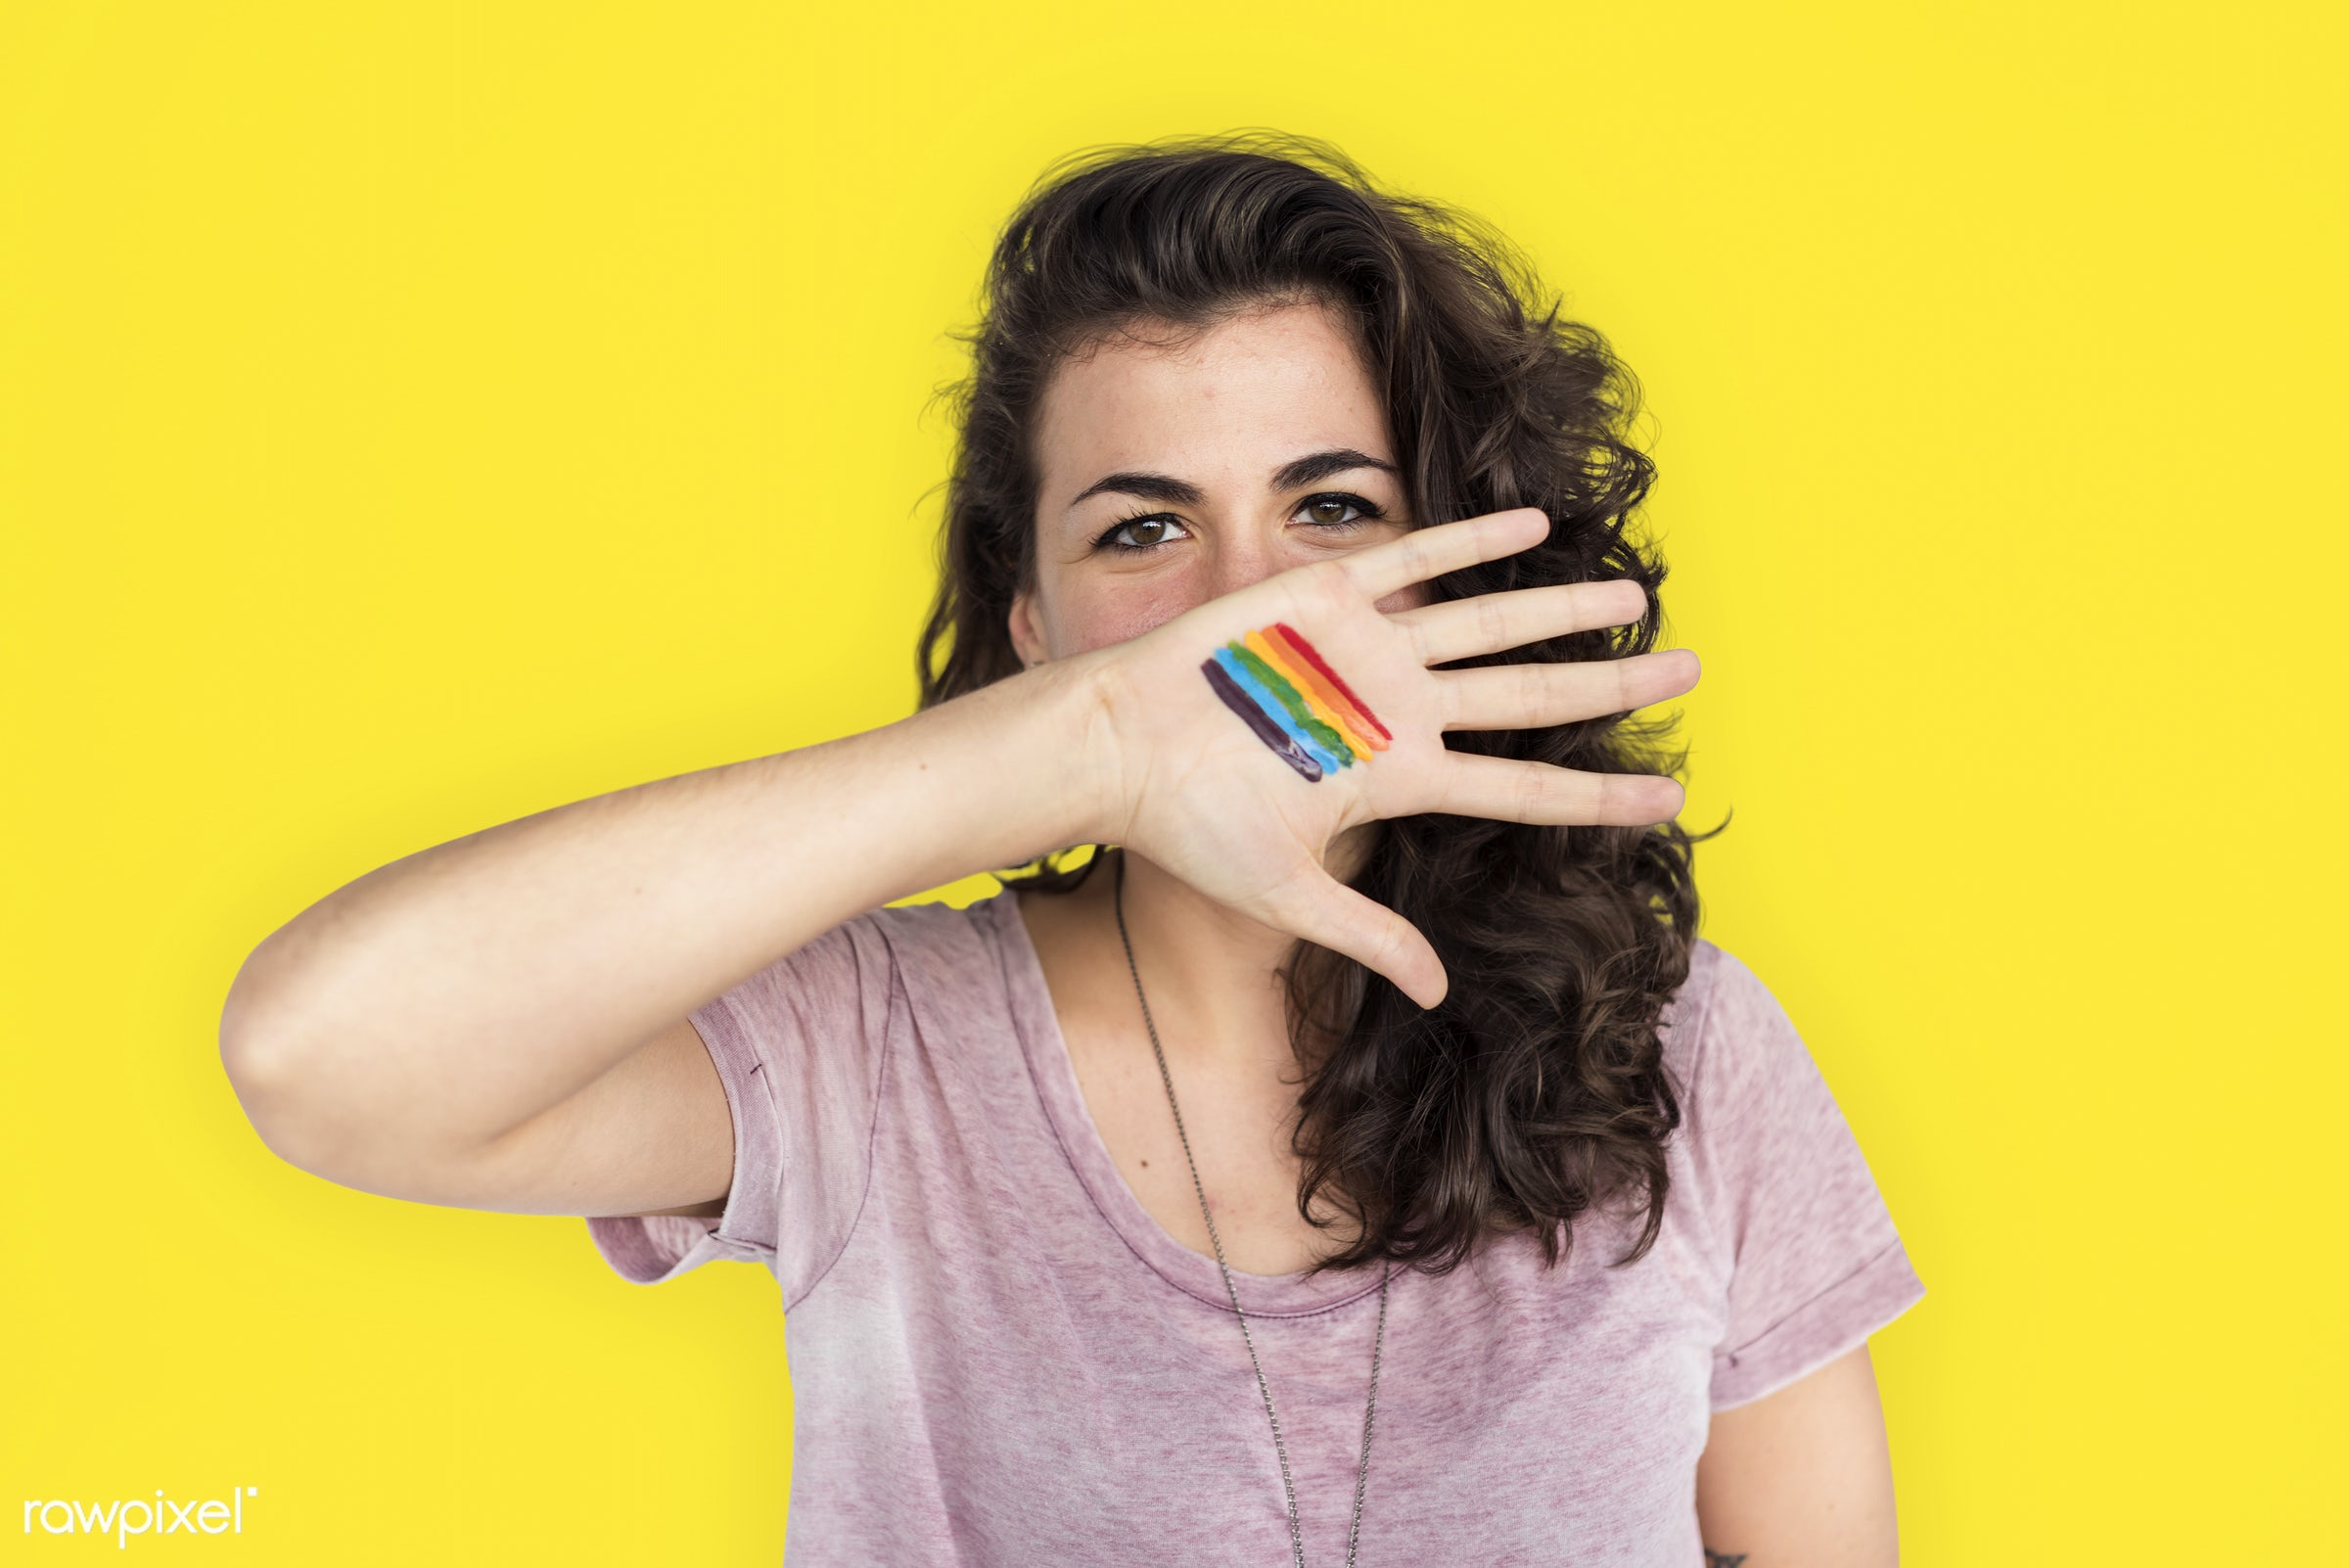 studio, face, person, human rights, colorful, cover mouth, rights, yellow, beauty, cute, pretty, people, women rights,...